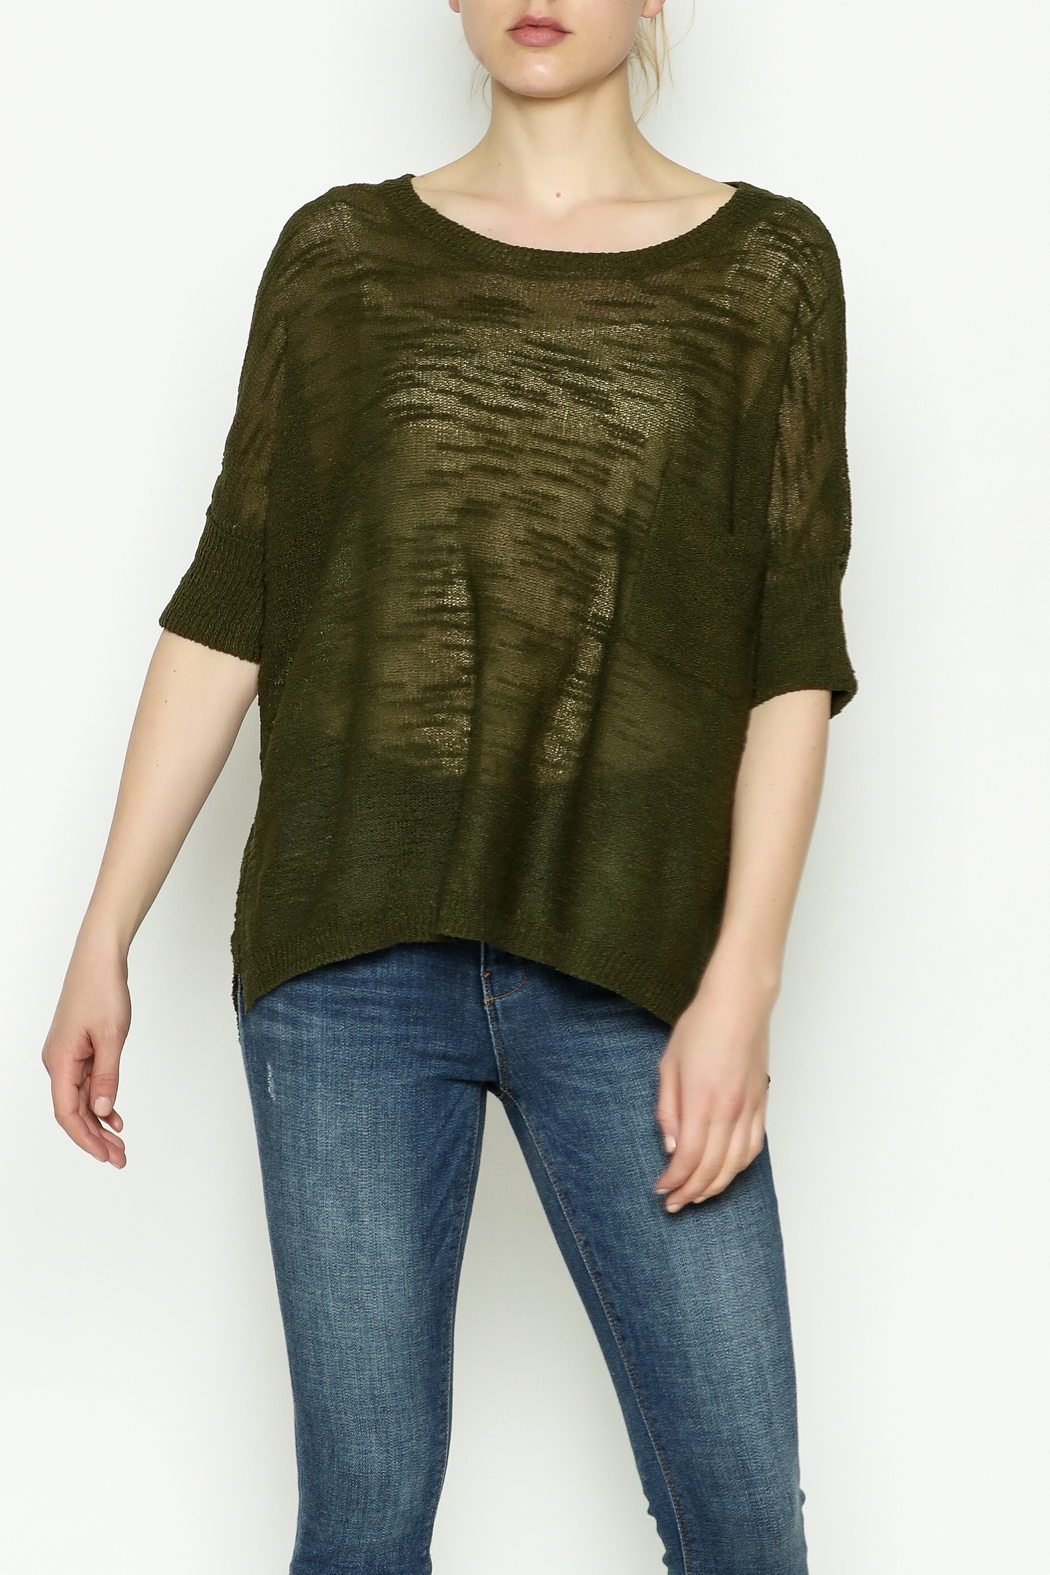 Olive & Oak Olive Lightweight Sweater - Front Cropped Image